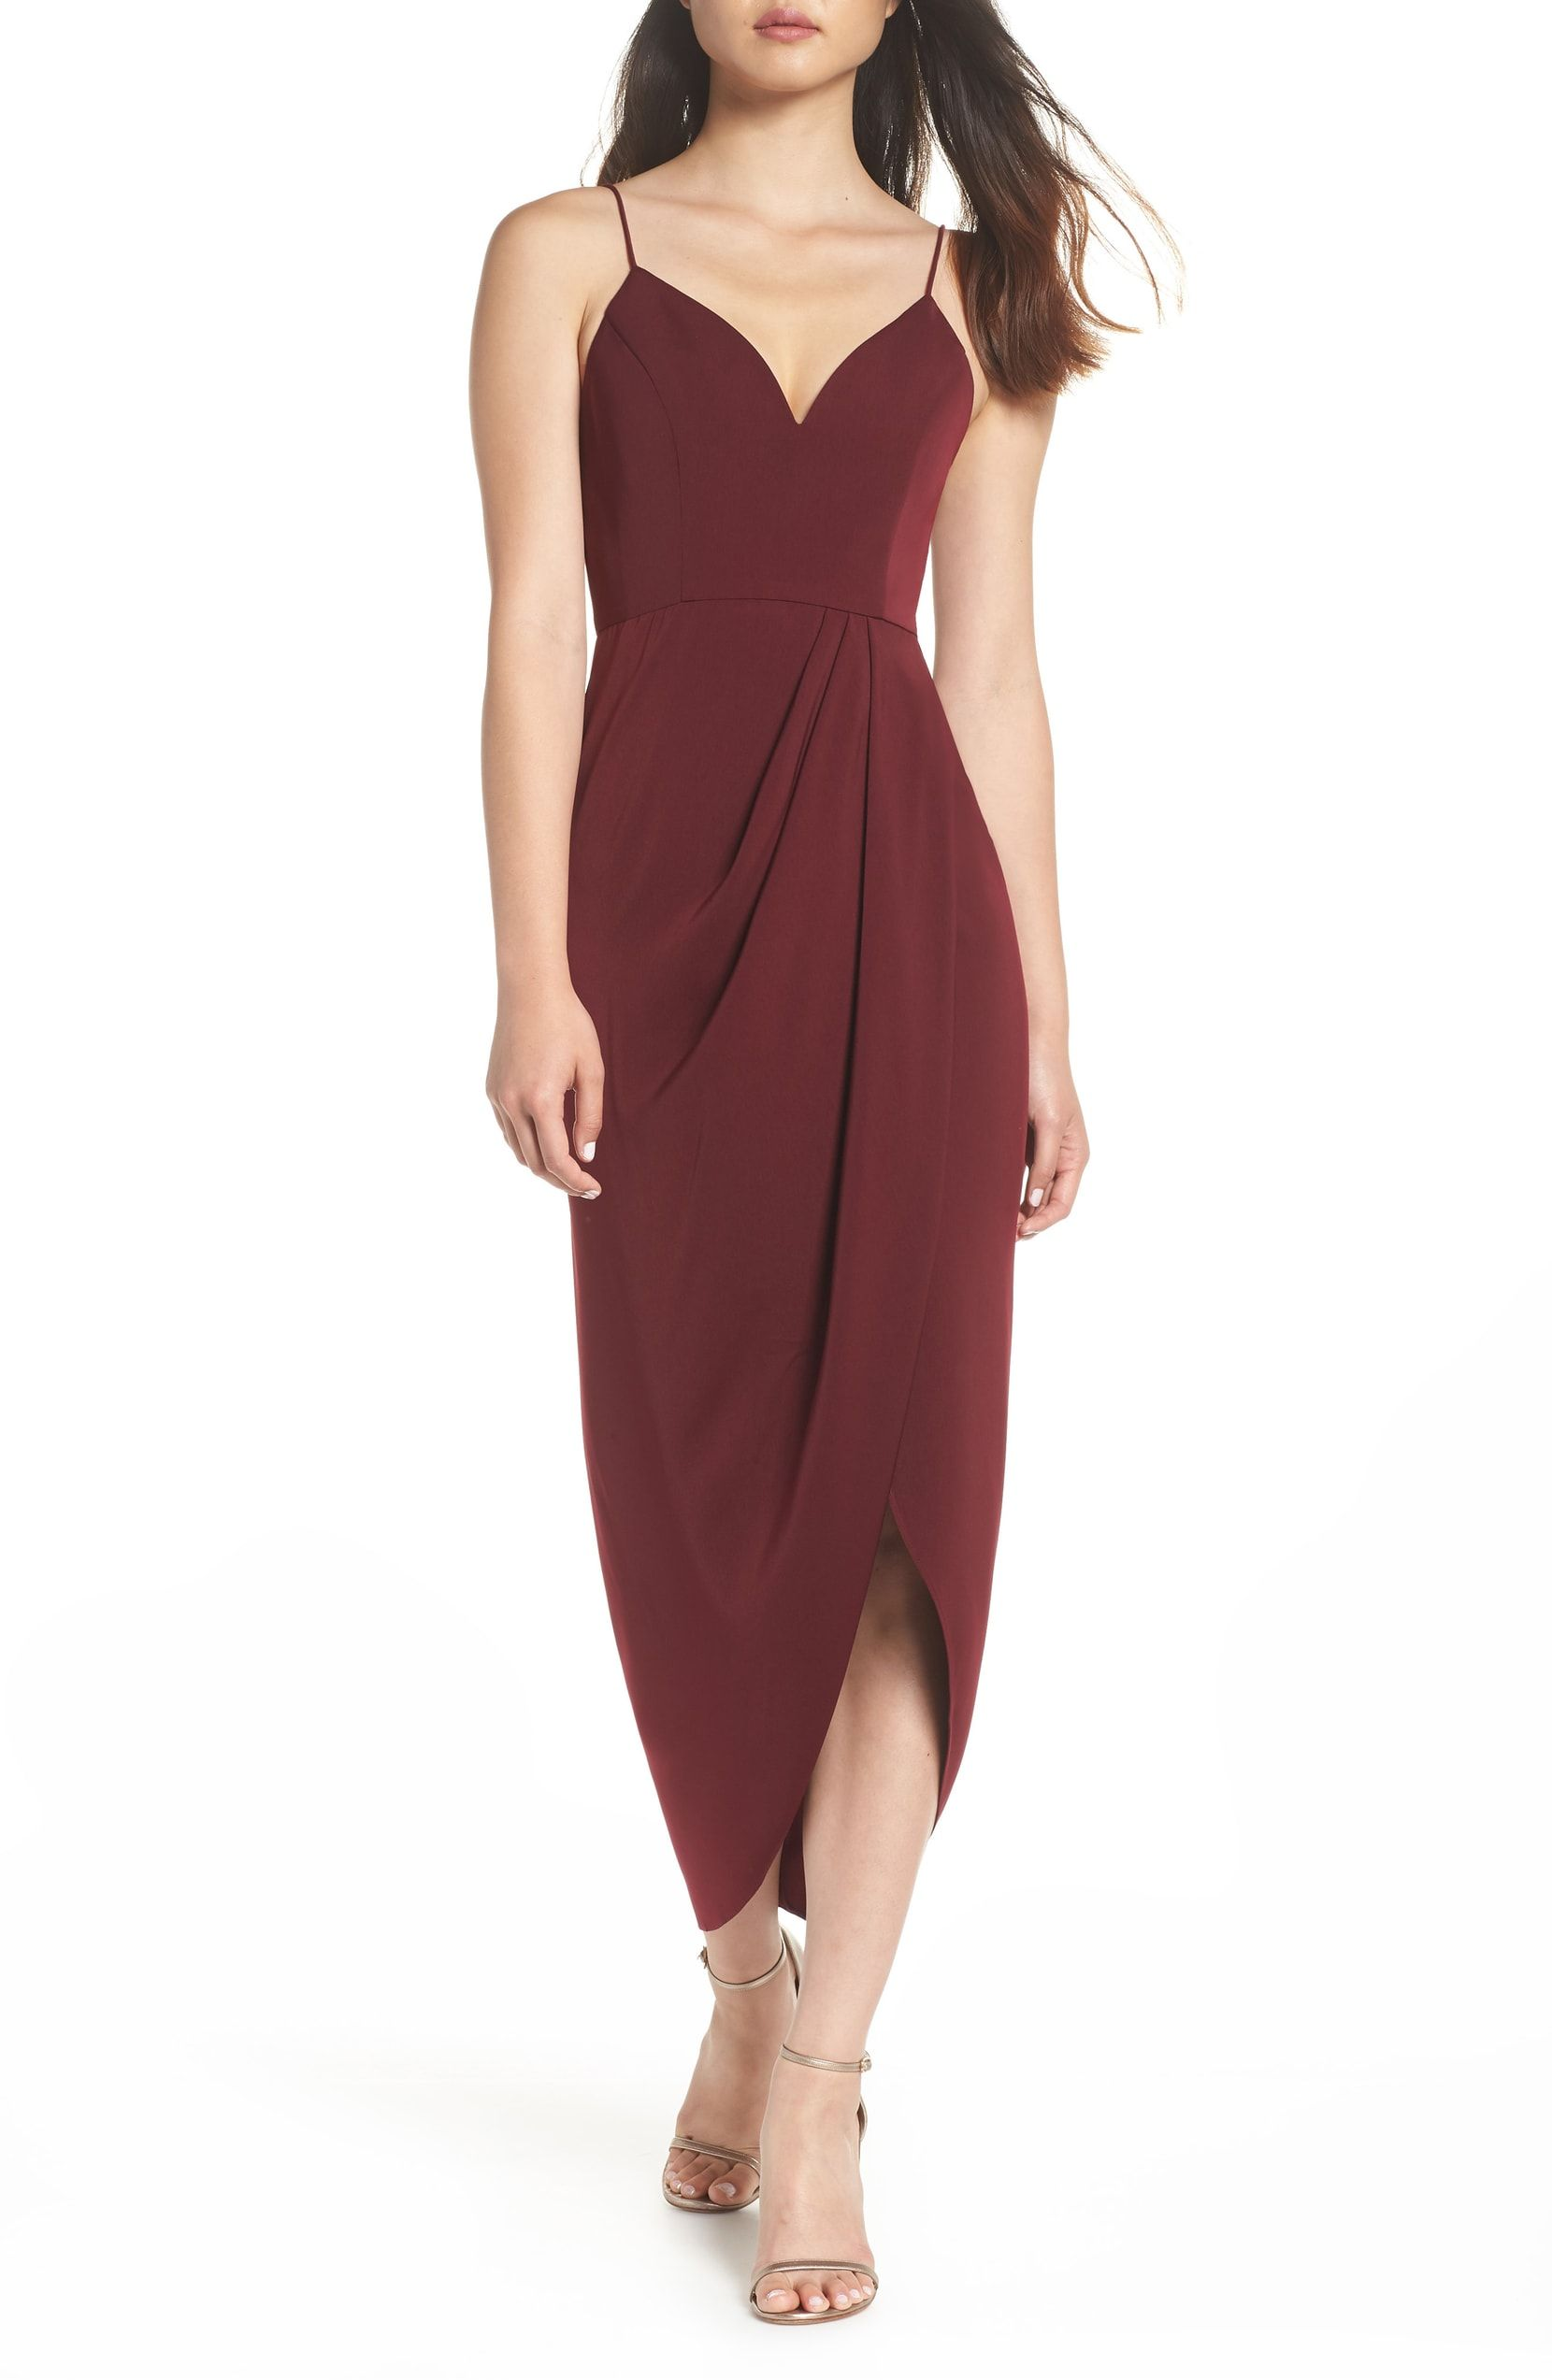 Maxi dresses to wear to a wedding  Tulip Hem Maxi Dress Main color Burgundy  Wedding  Pinterest